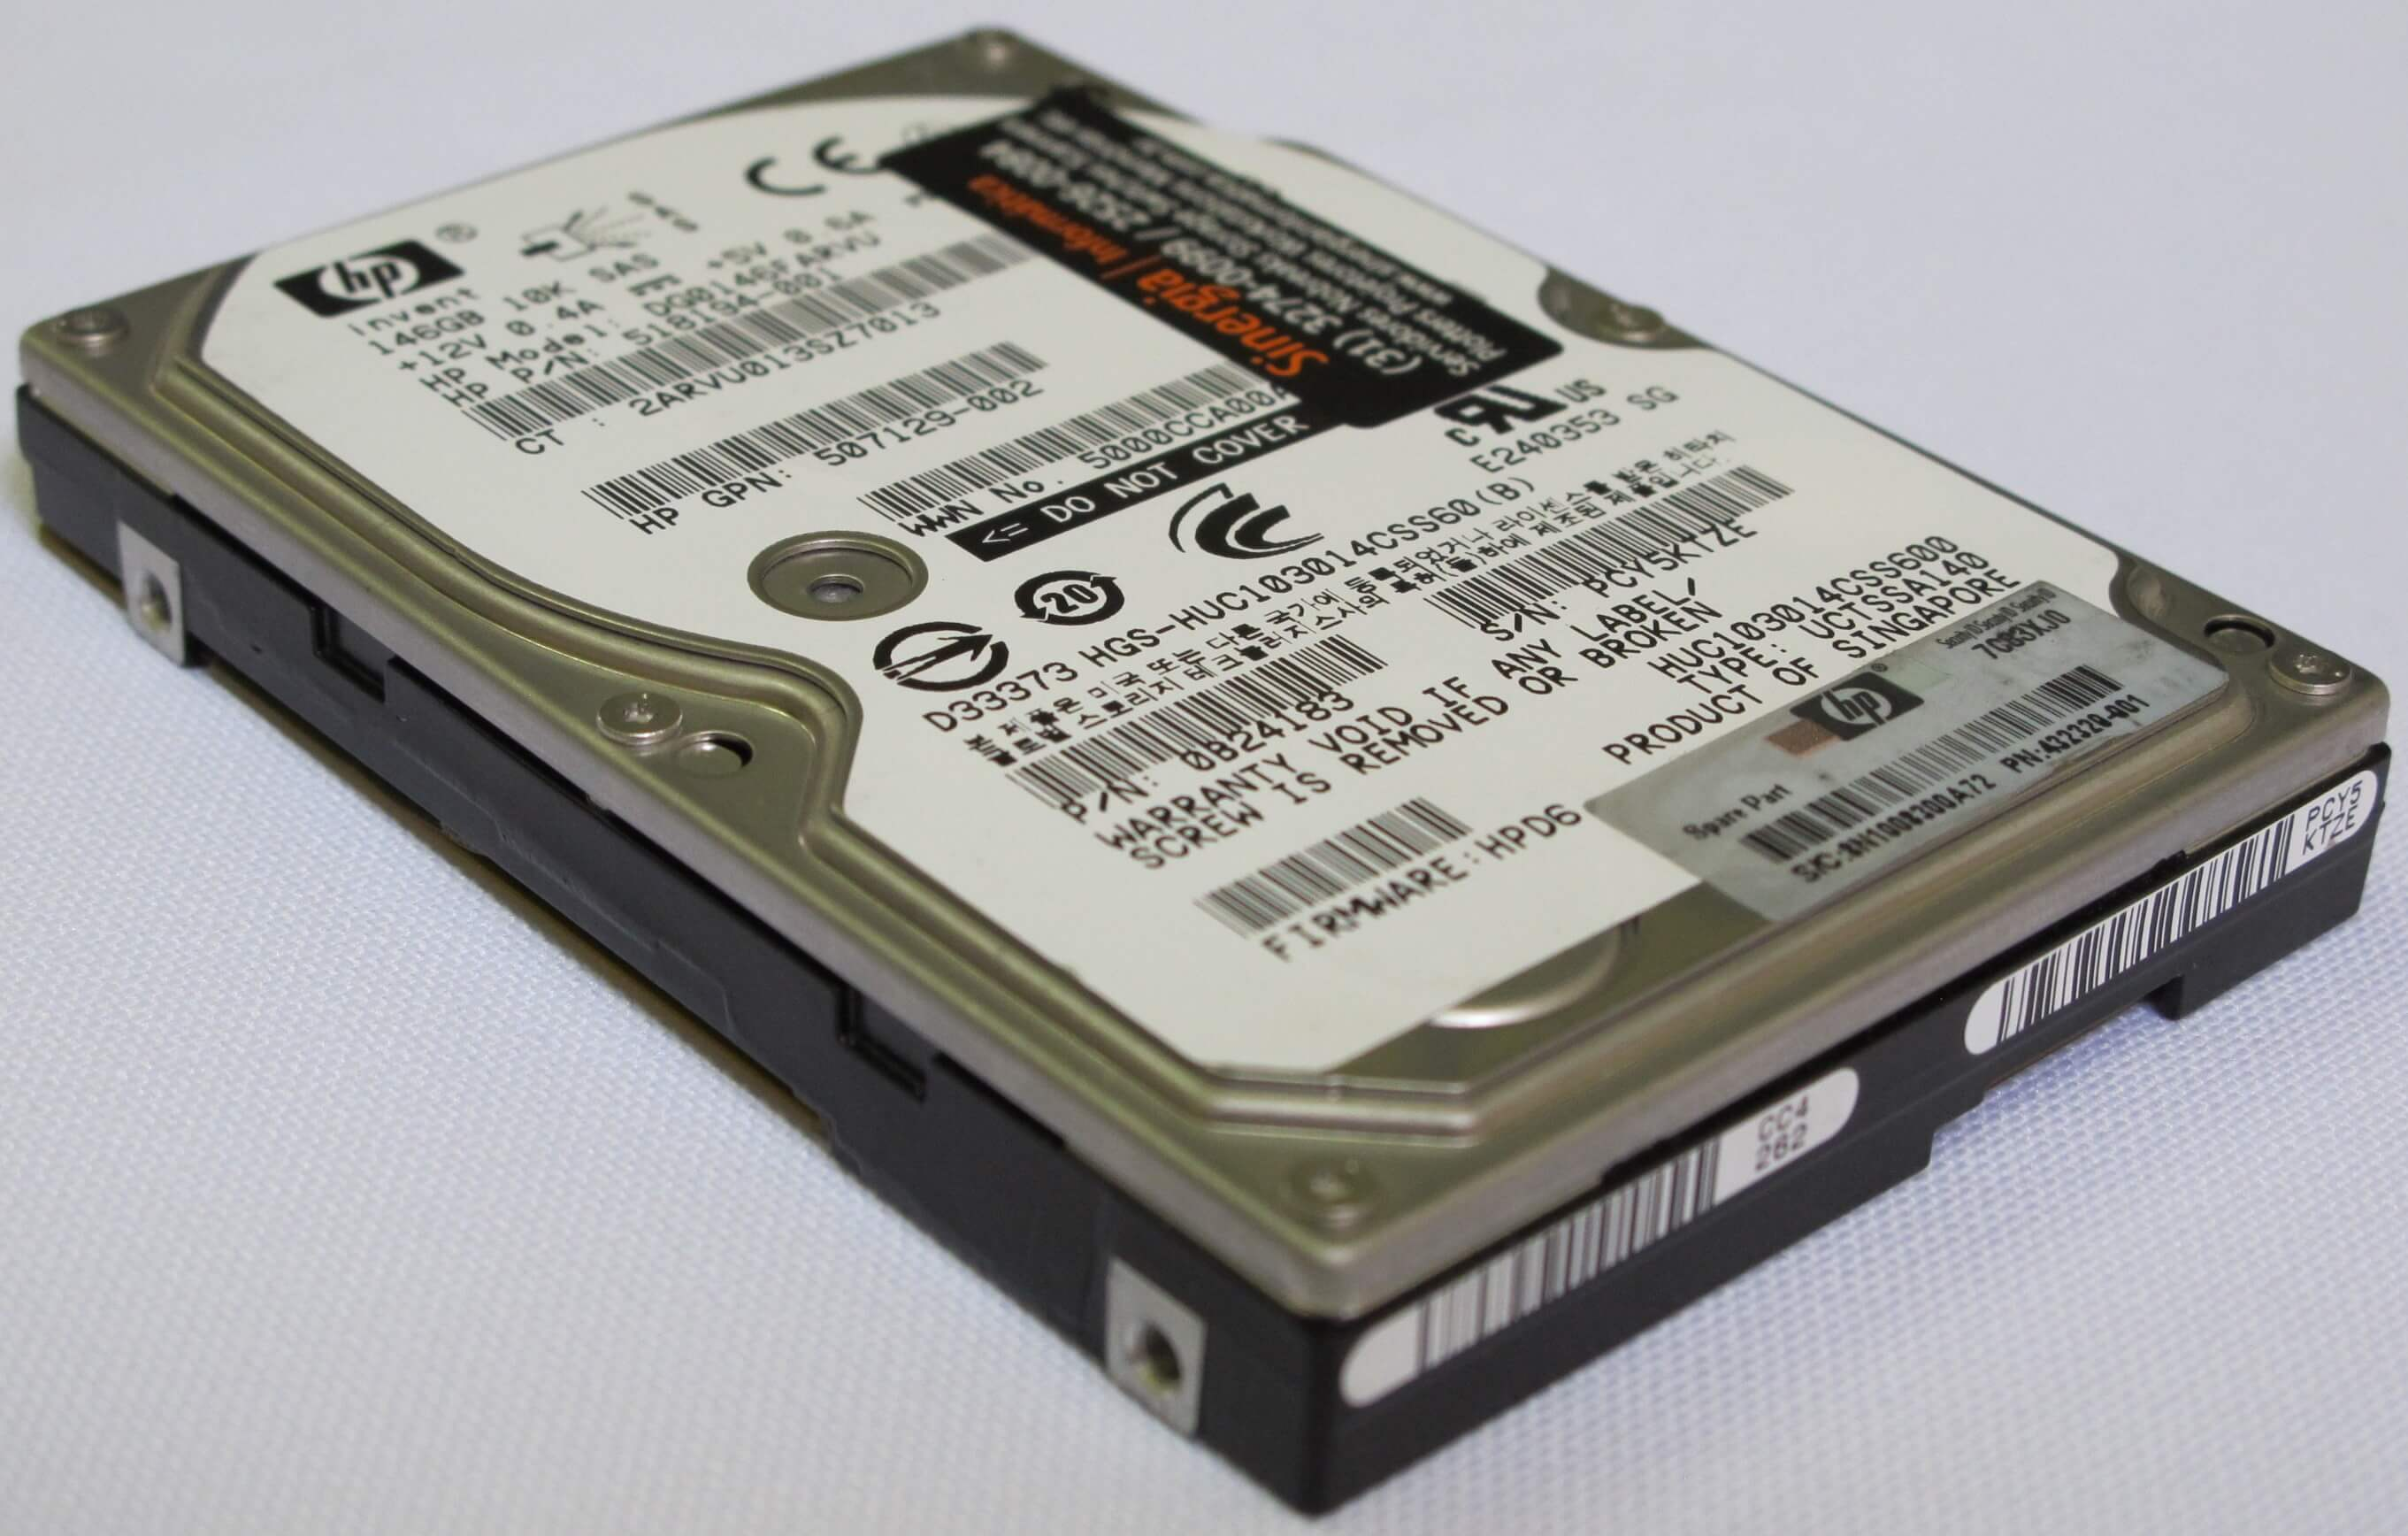 HDD 146GB SAS 10K 518194-001 e 507129-002 foto close lateral esquerda